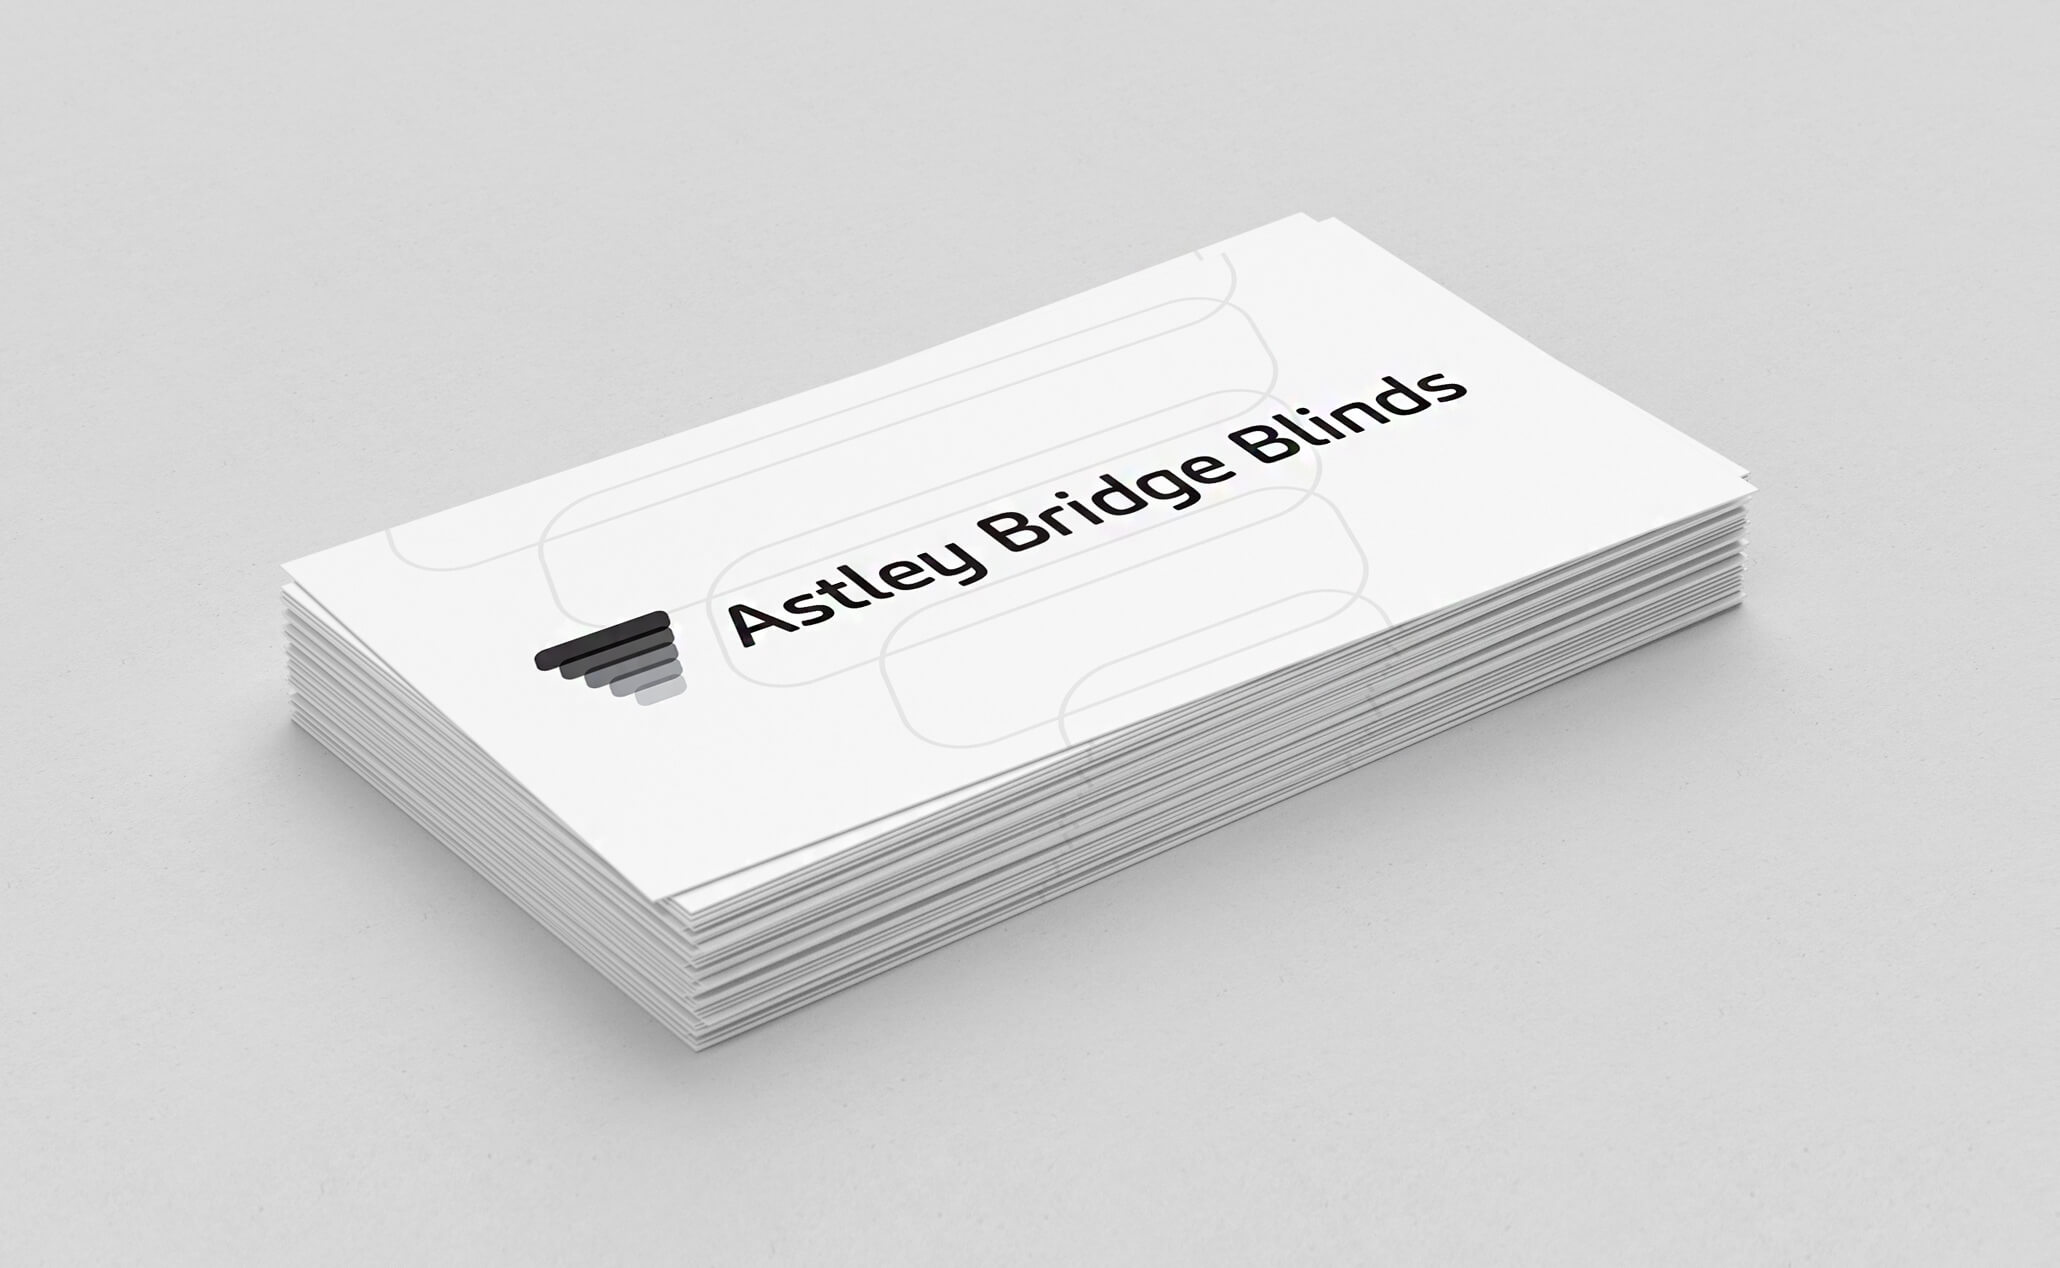 Astley Bridge Blinds business cards